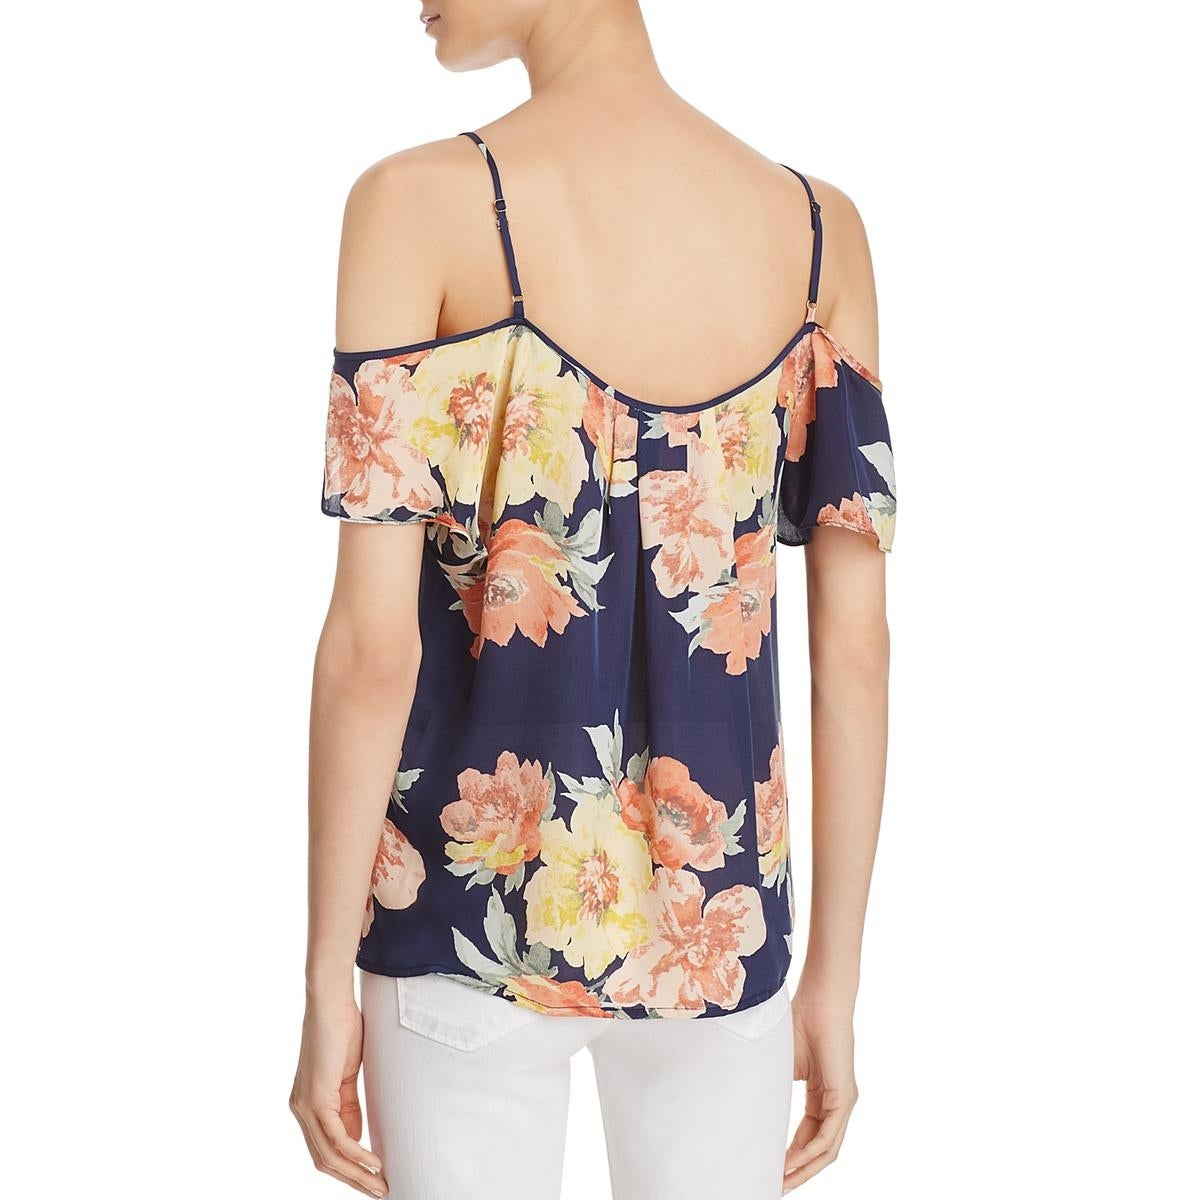 bee5b6d5f489cd Shop Joie Womens ADORLEE Pullover Top Silk Sleeveless - Free Shipping On  Orders Over  45 - Overstock - 22832870